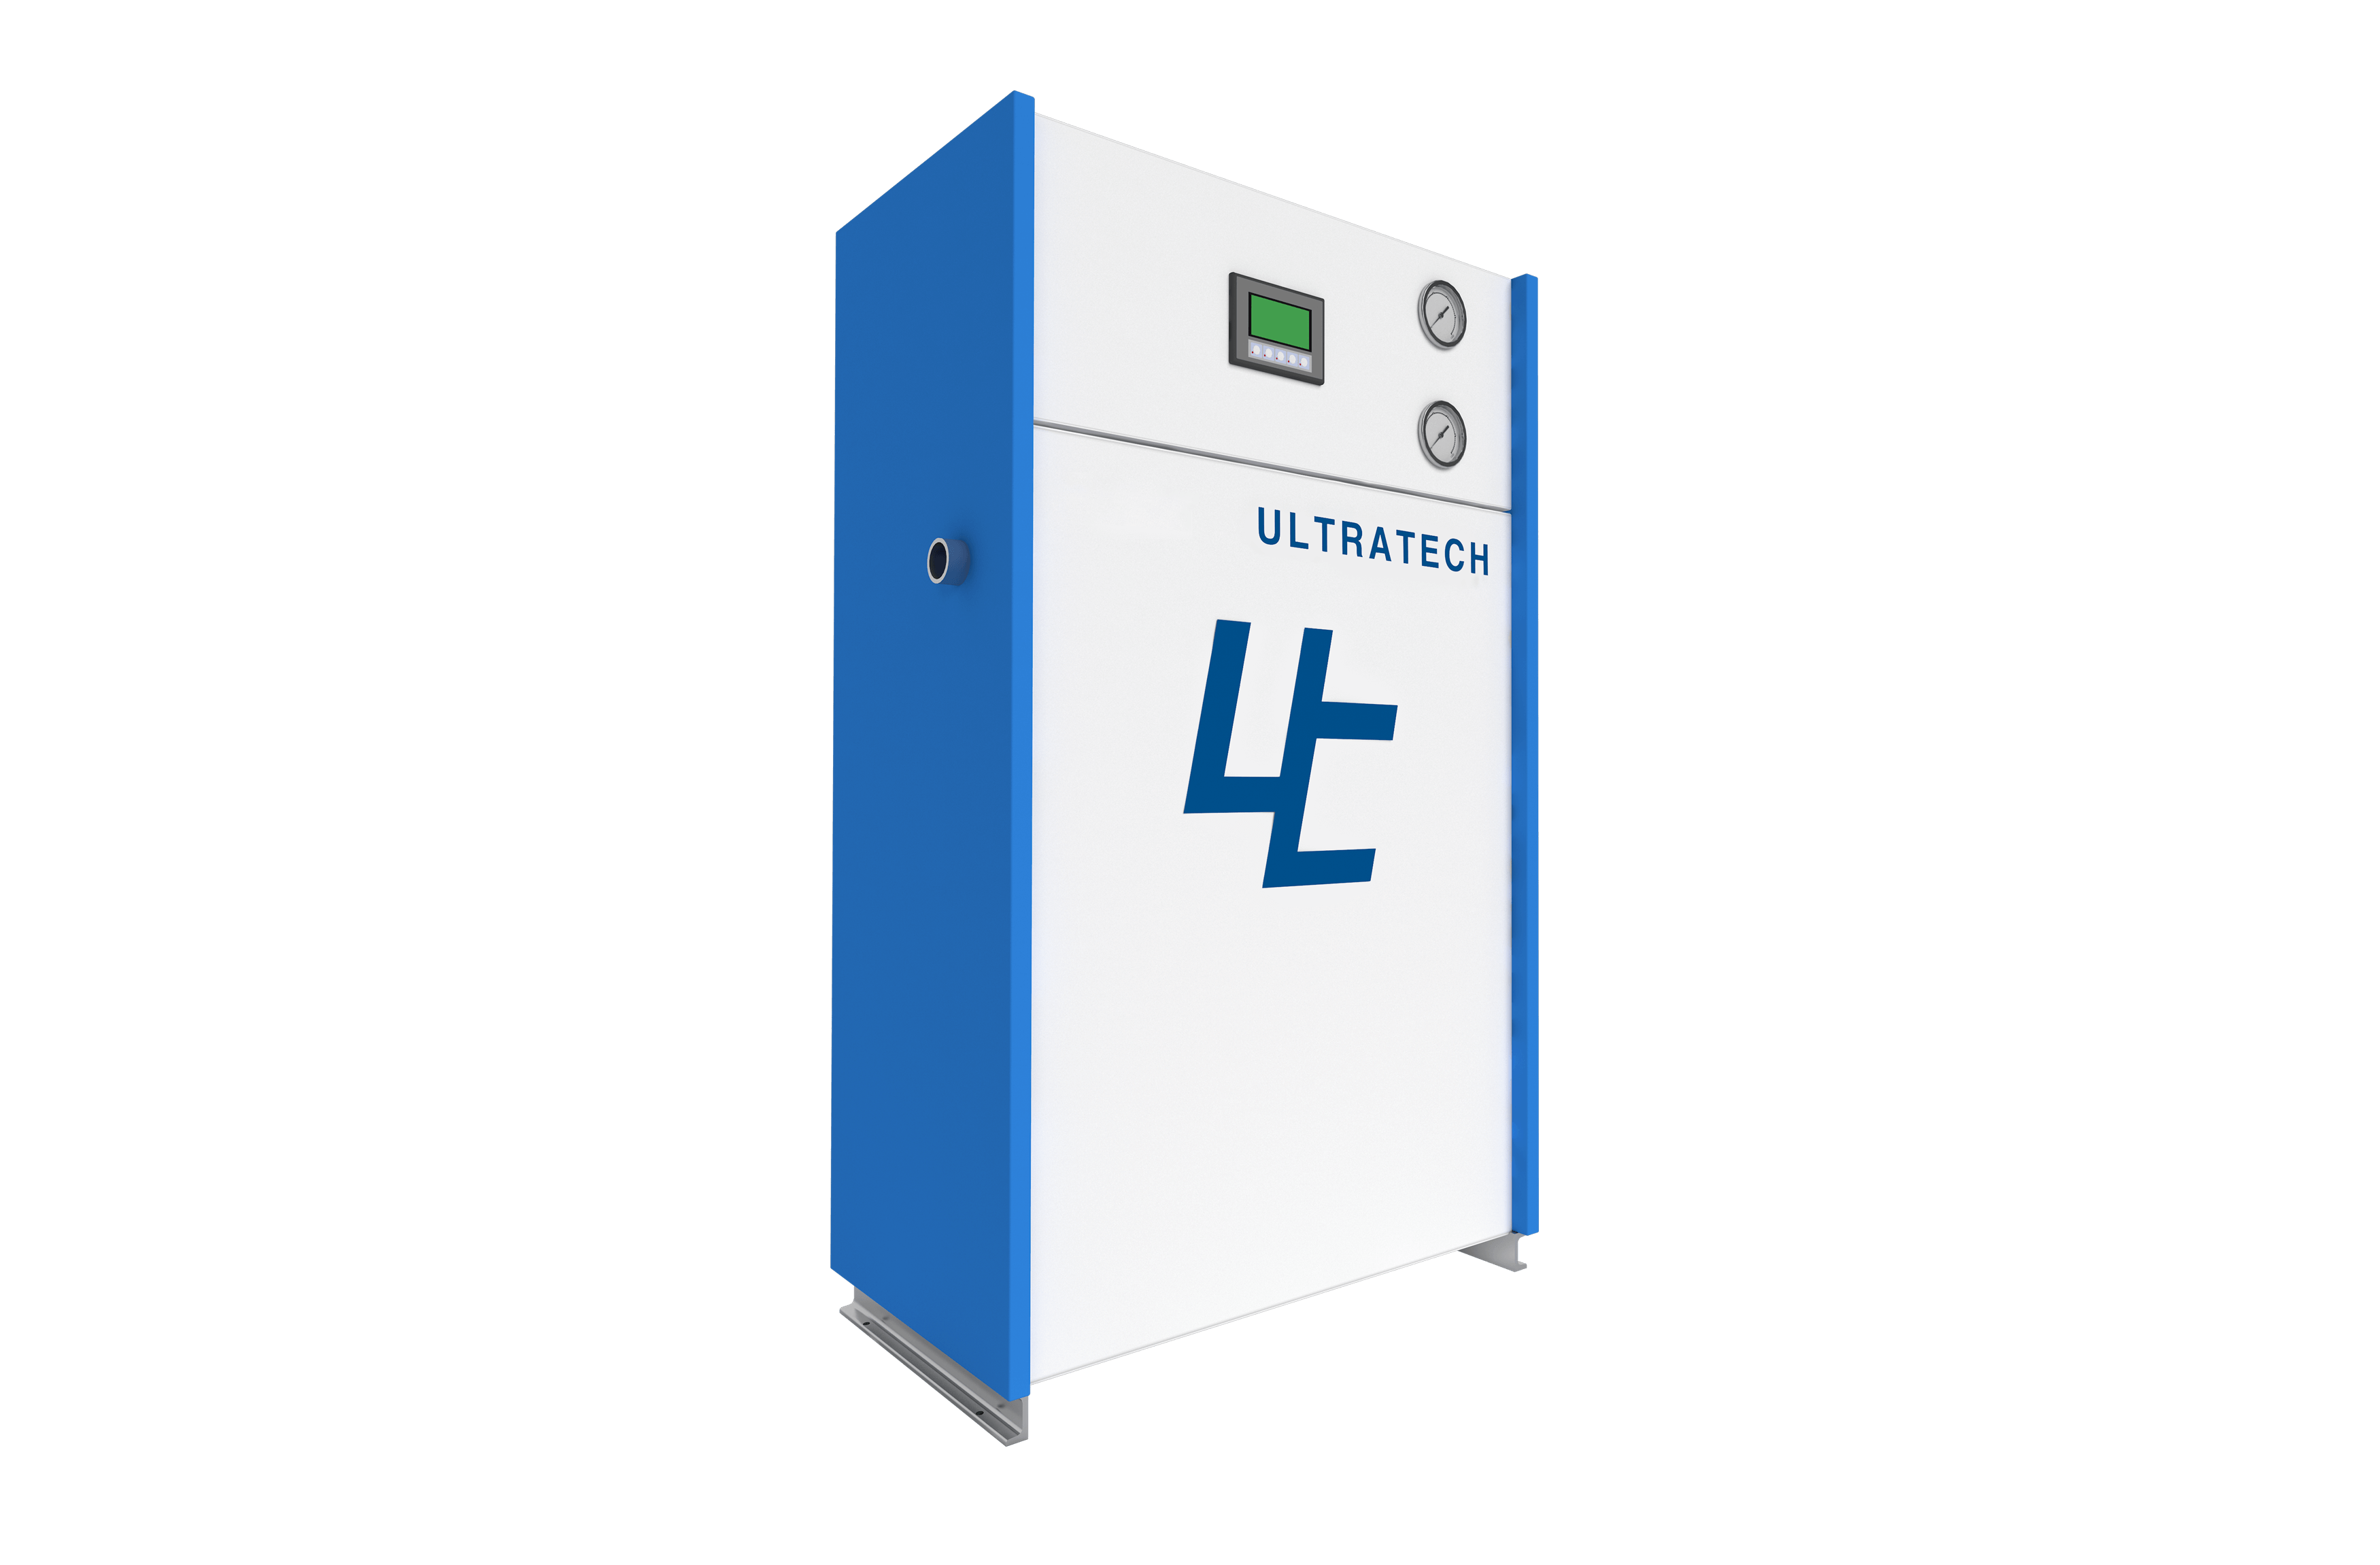 The ULTRATECH air treatment unit is capable to produce breathable air according to the most exigent Internacional standards. The unit includes a pair of desiccant dryer towers, coalescing air filters, activated carbon column micro and sub-microfilmers, and CO/CO2 reduction tower.